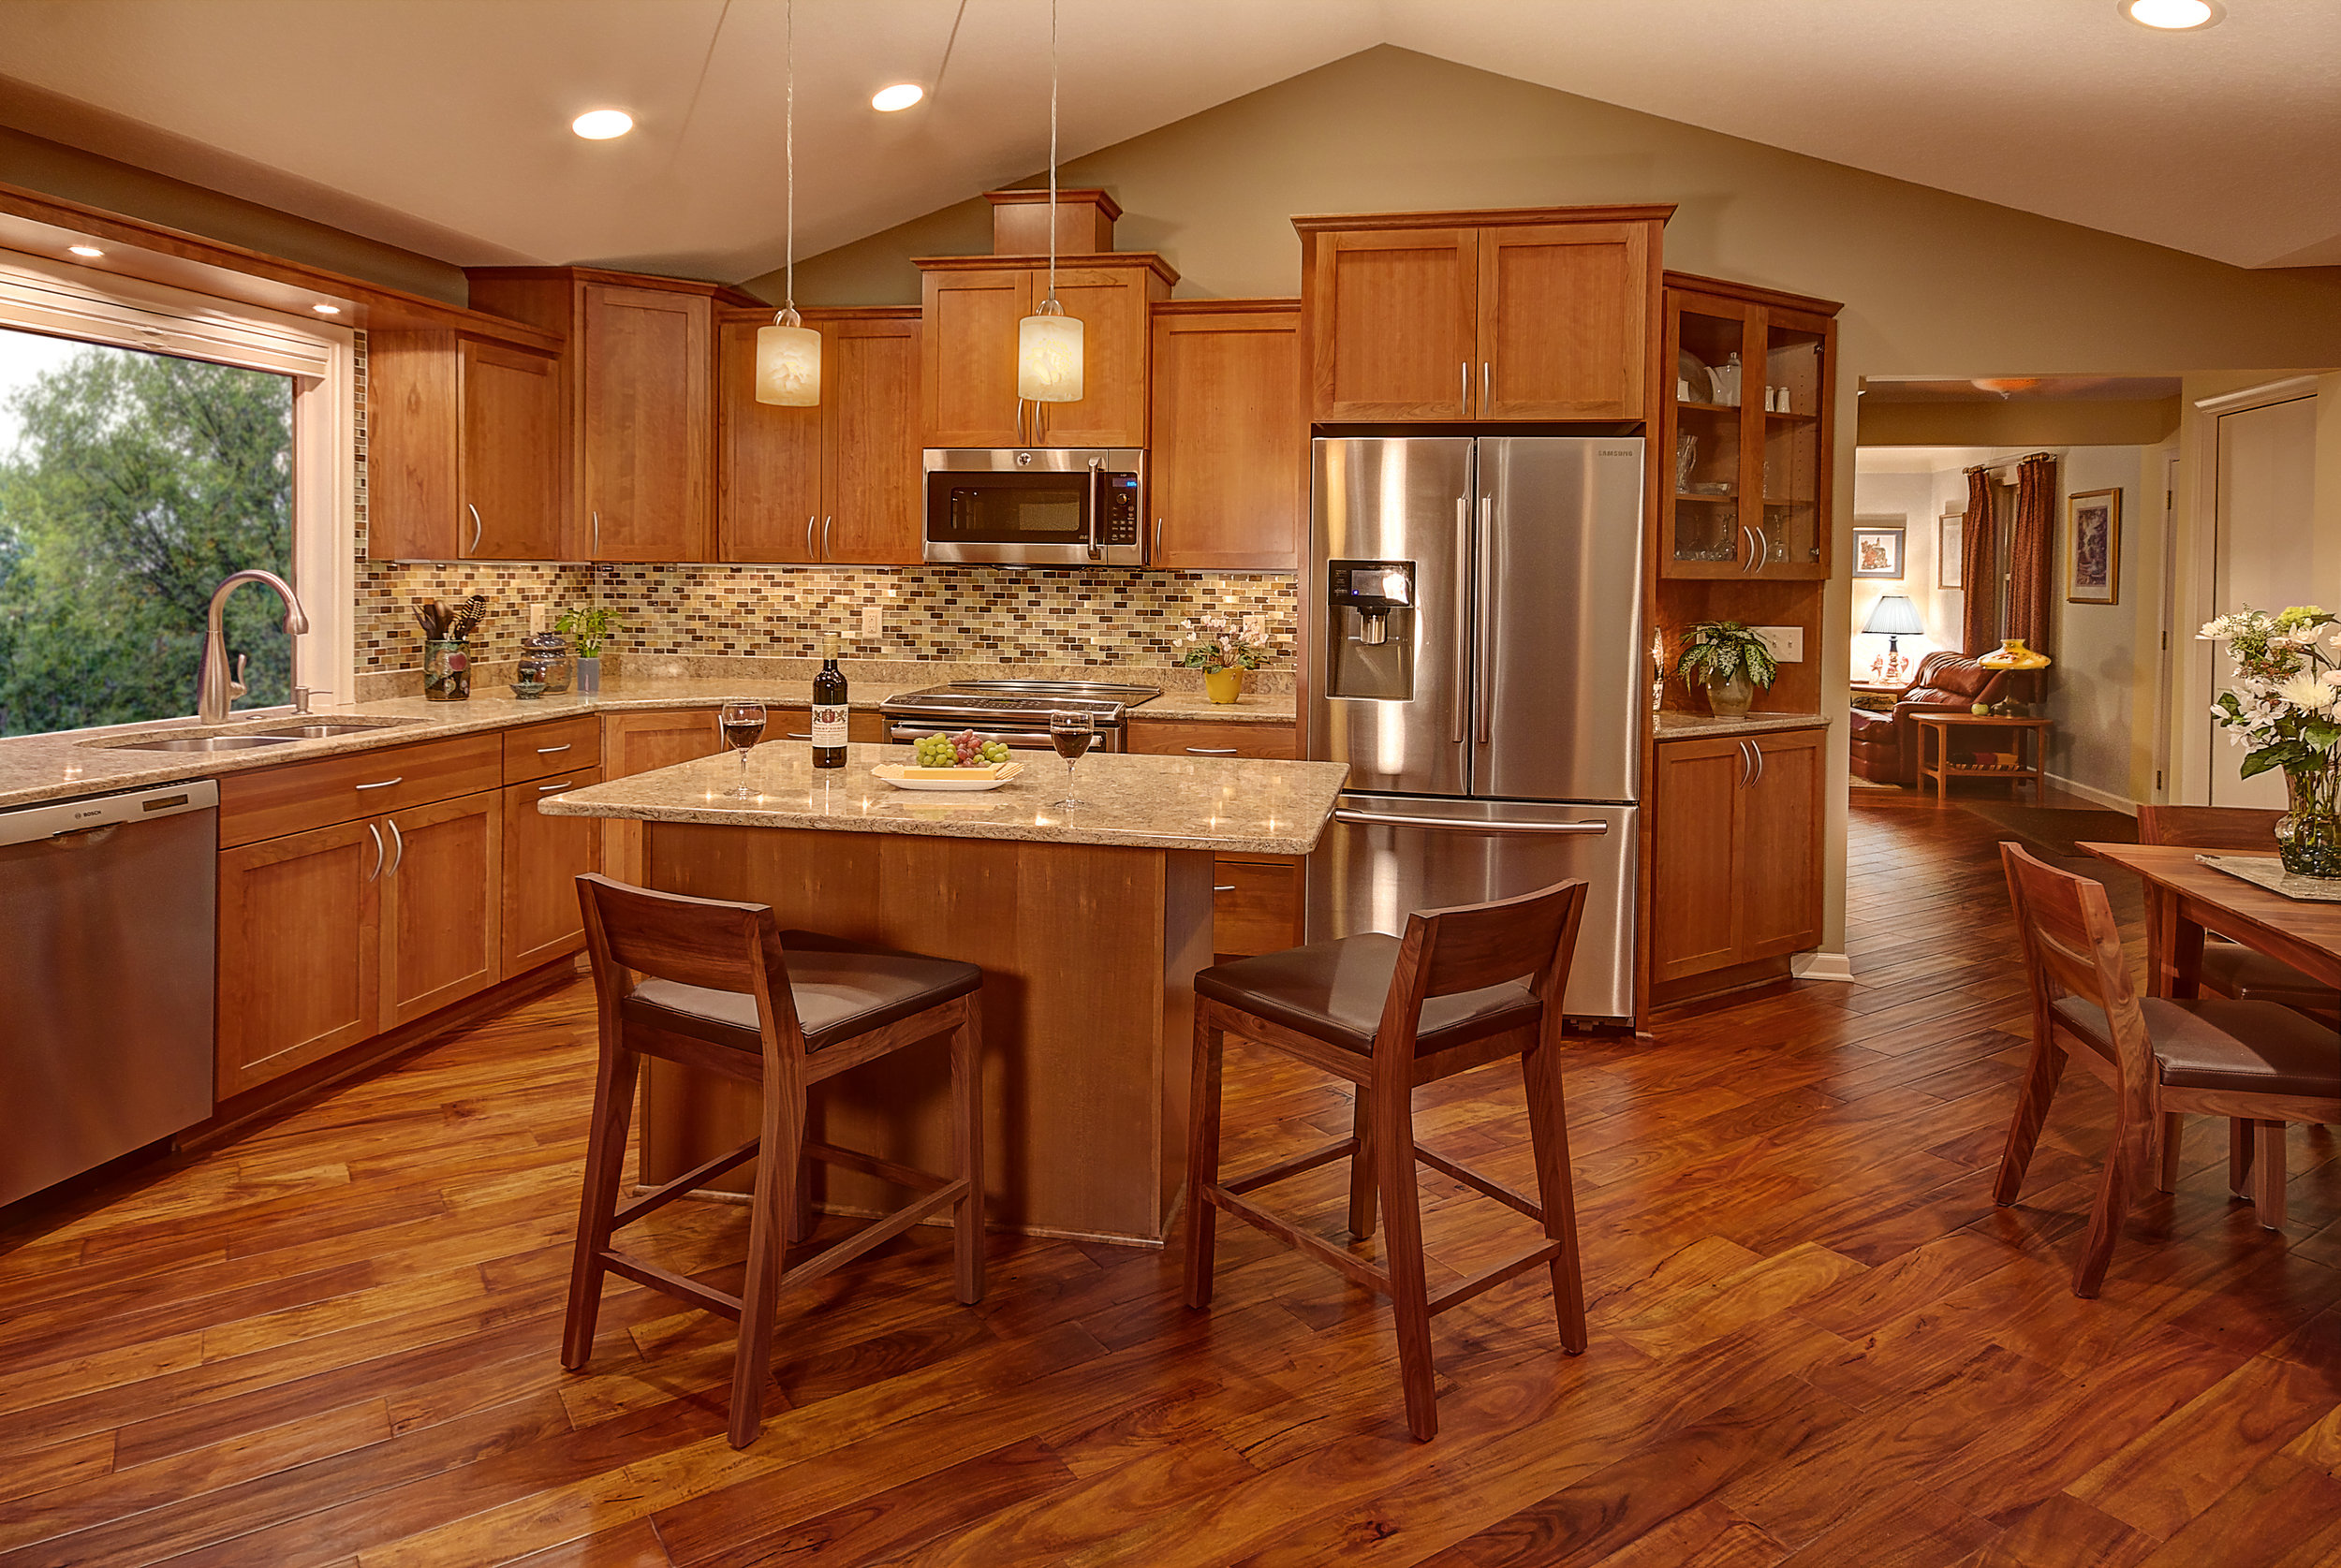 After New Kitchen East.jpg